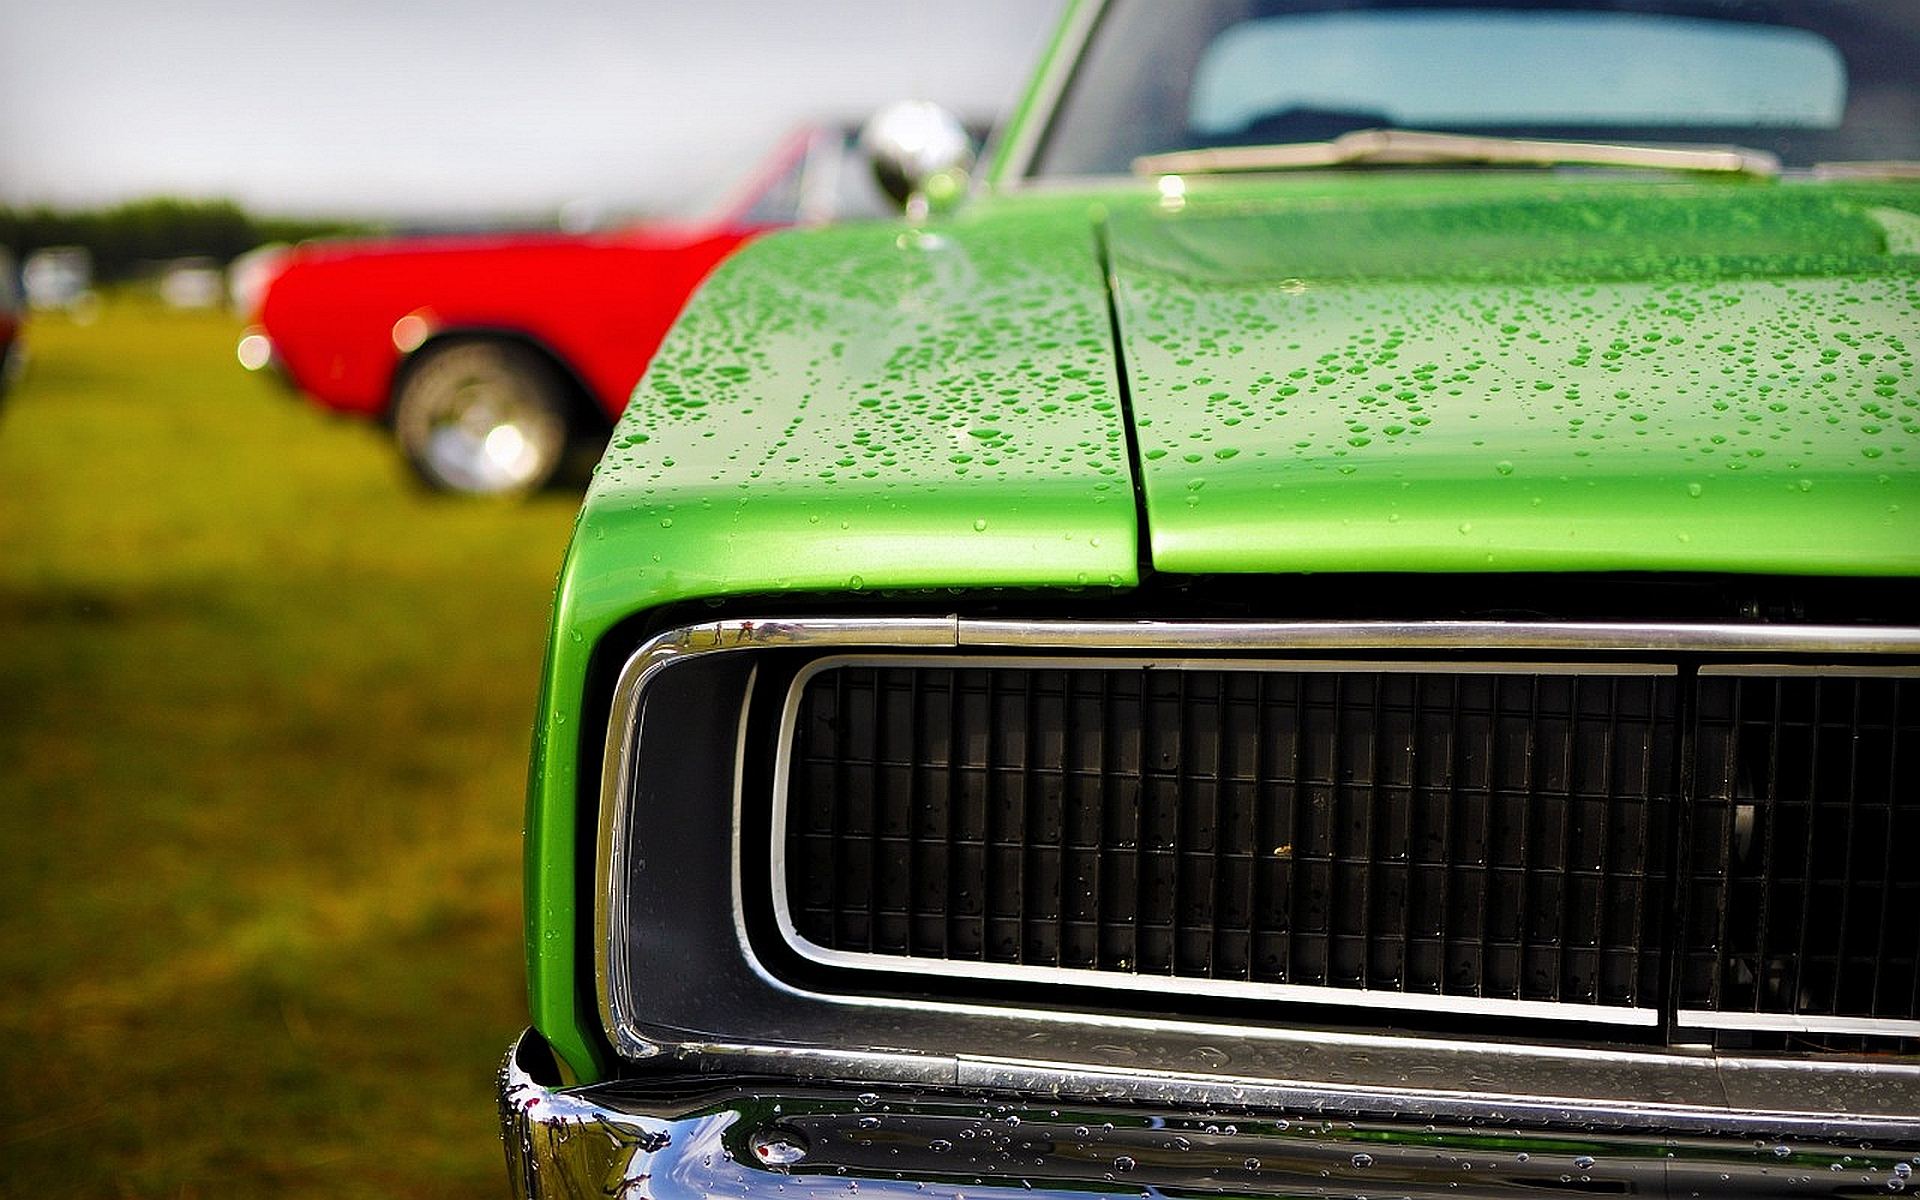 Dodge Charger Desktop Wallpaper - WallpaperSafari